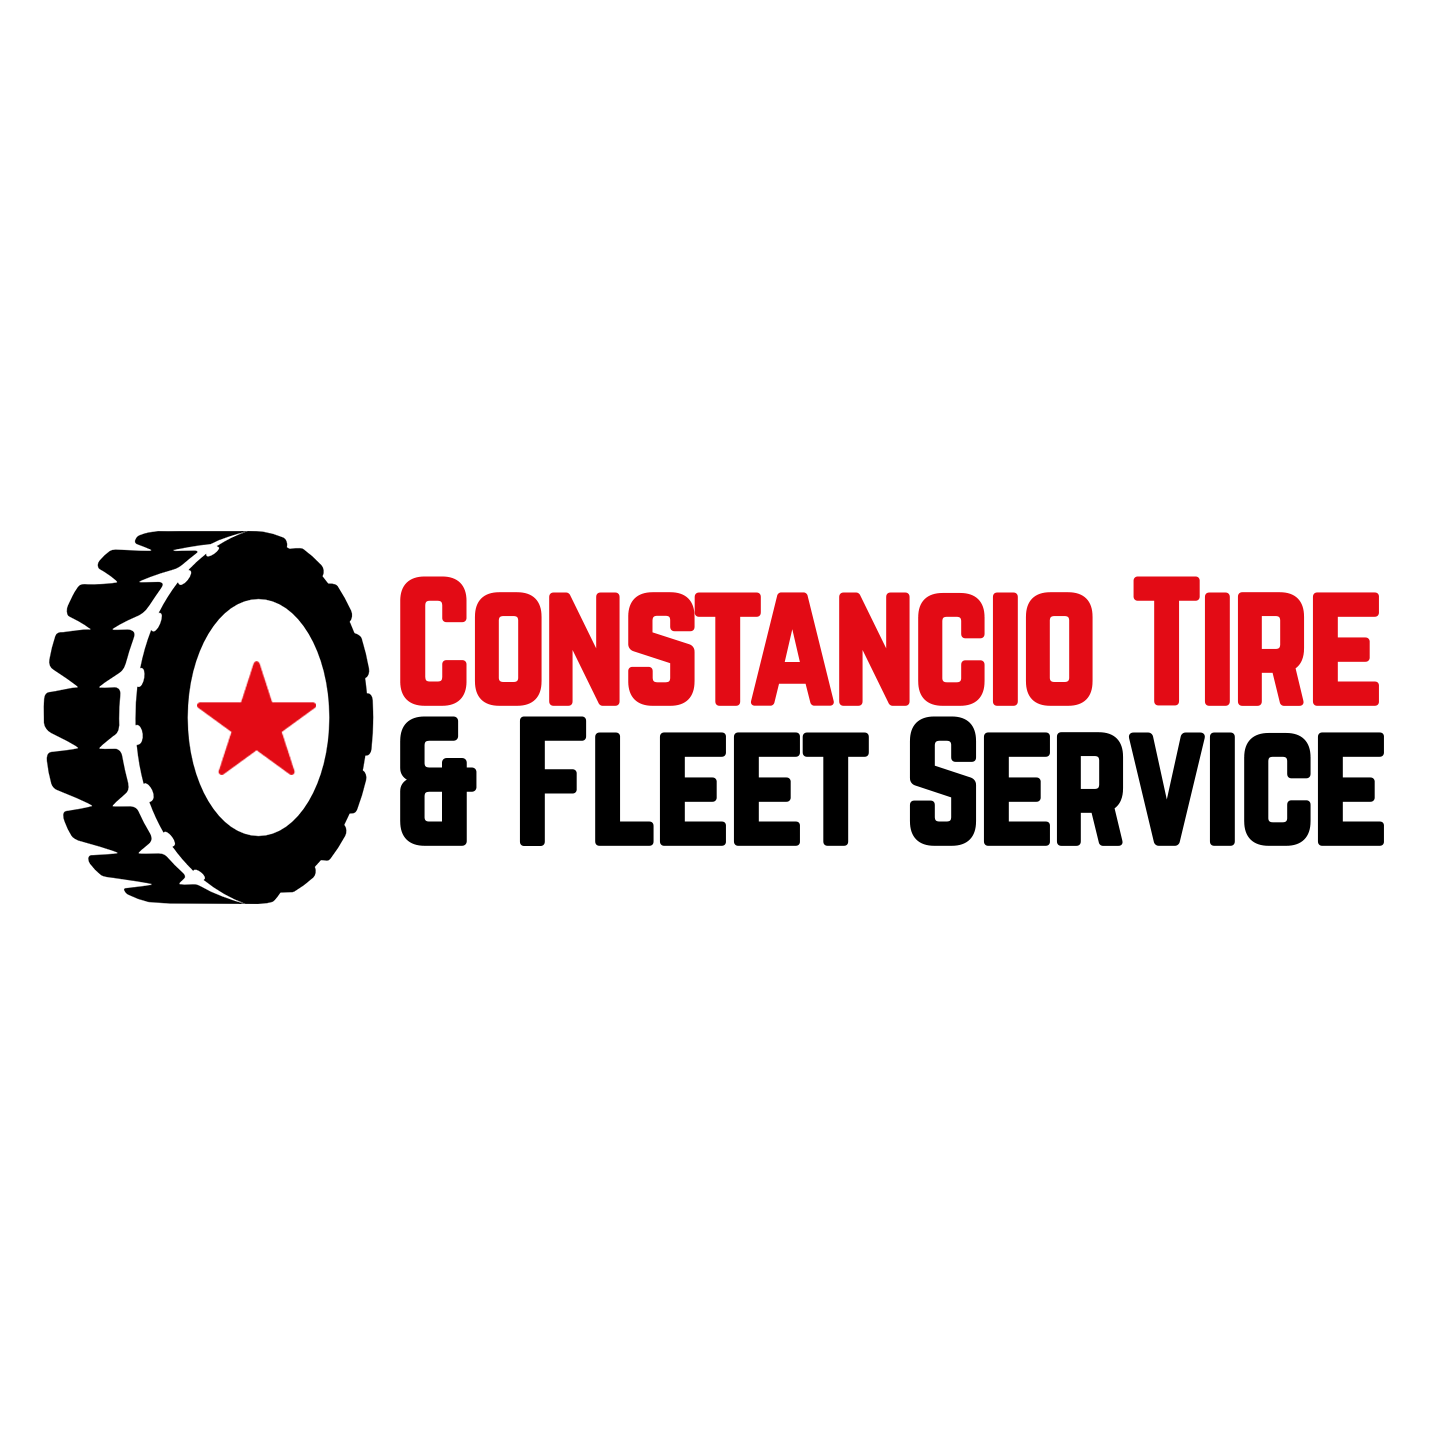 Constancio Tire and Fleet Service